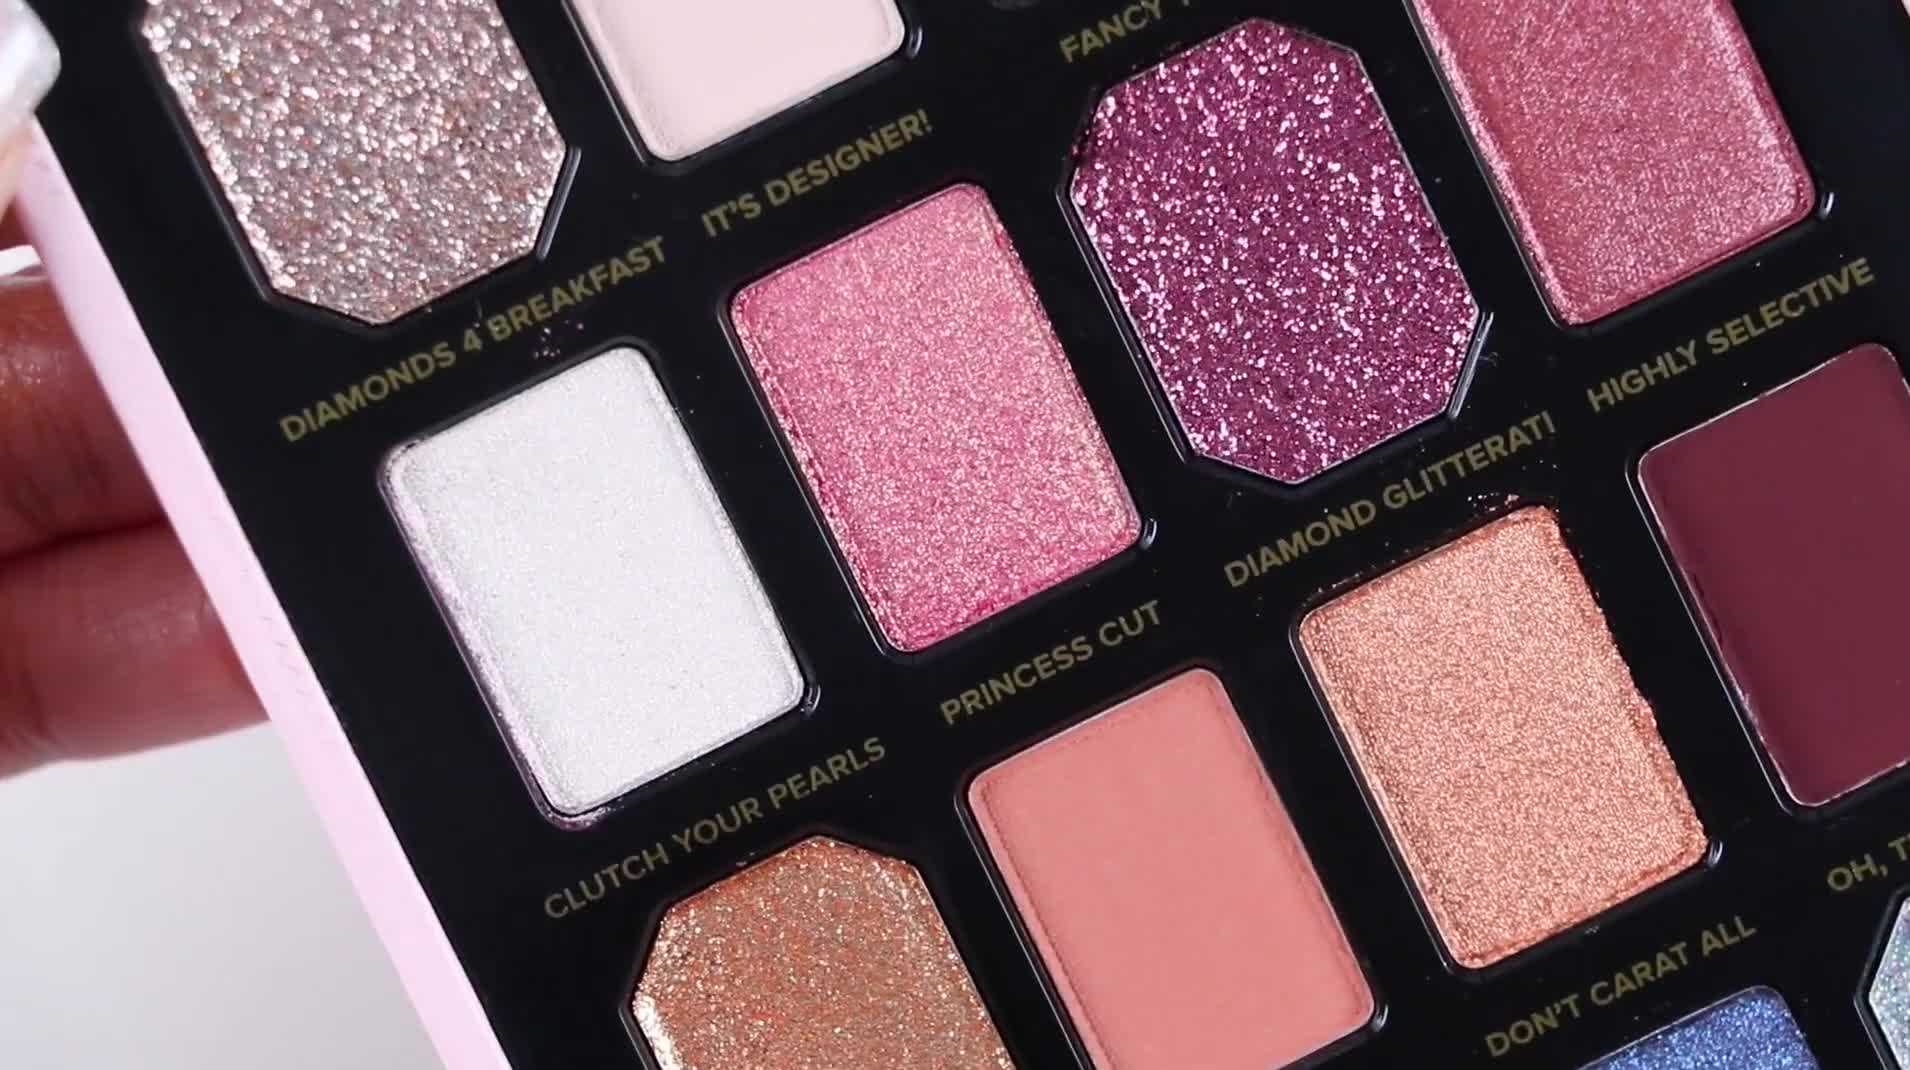 Too Faced Pretty Rich Diamond Light Eyeshadow Palette | SWATCHES